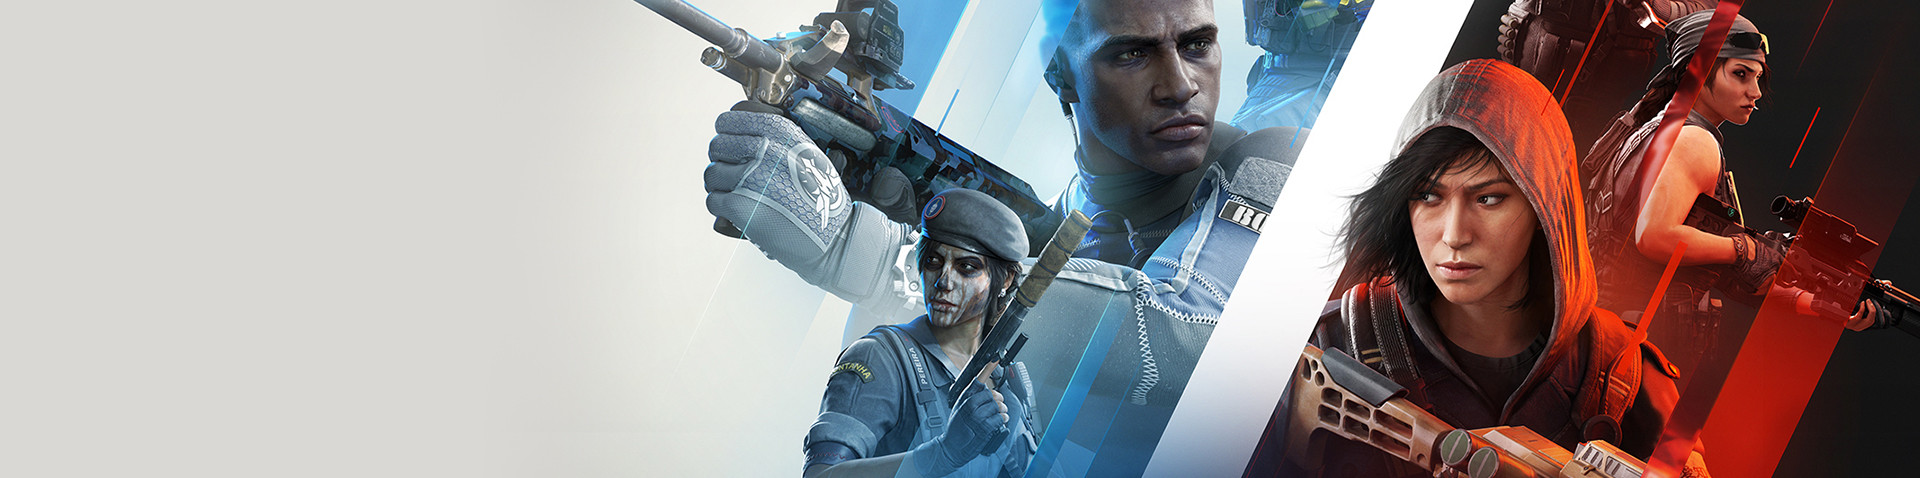 PS4 Tournaments: Open Series integrated into Apex Legends and Rainbow Six: Siege